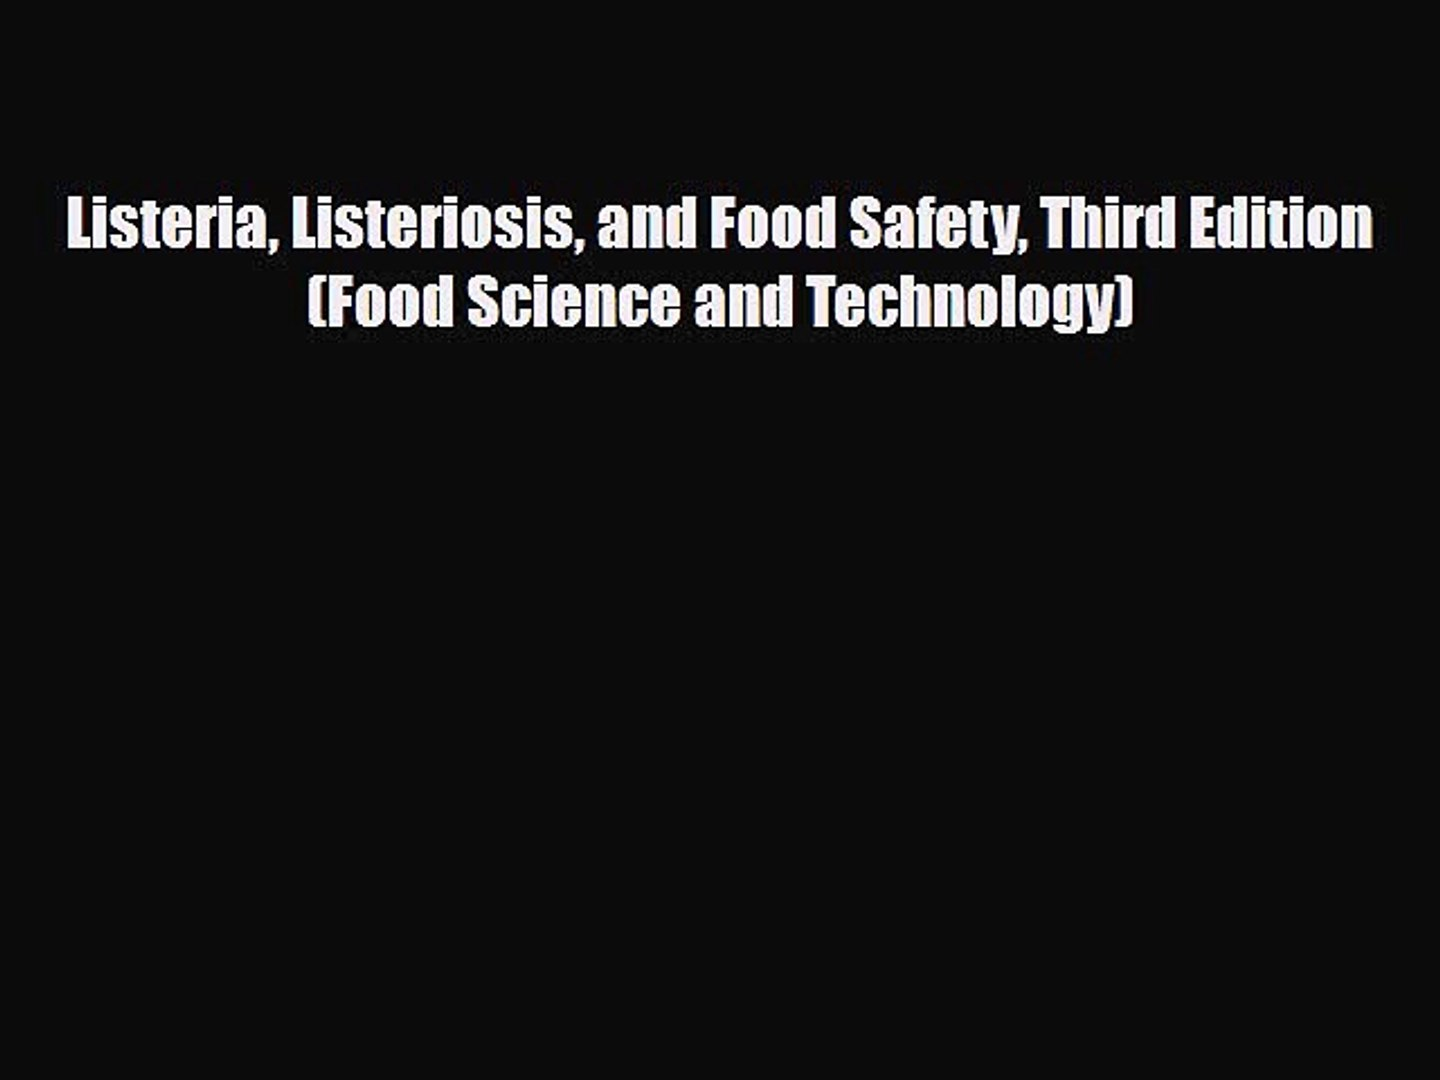 Listeria, Listeriosis, and Food Safety, Third Edition (Food Science and Technology)